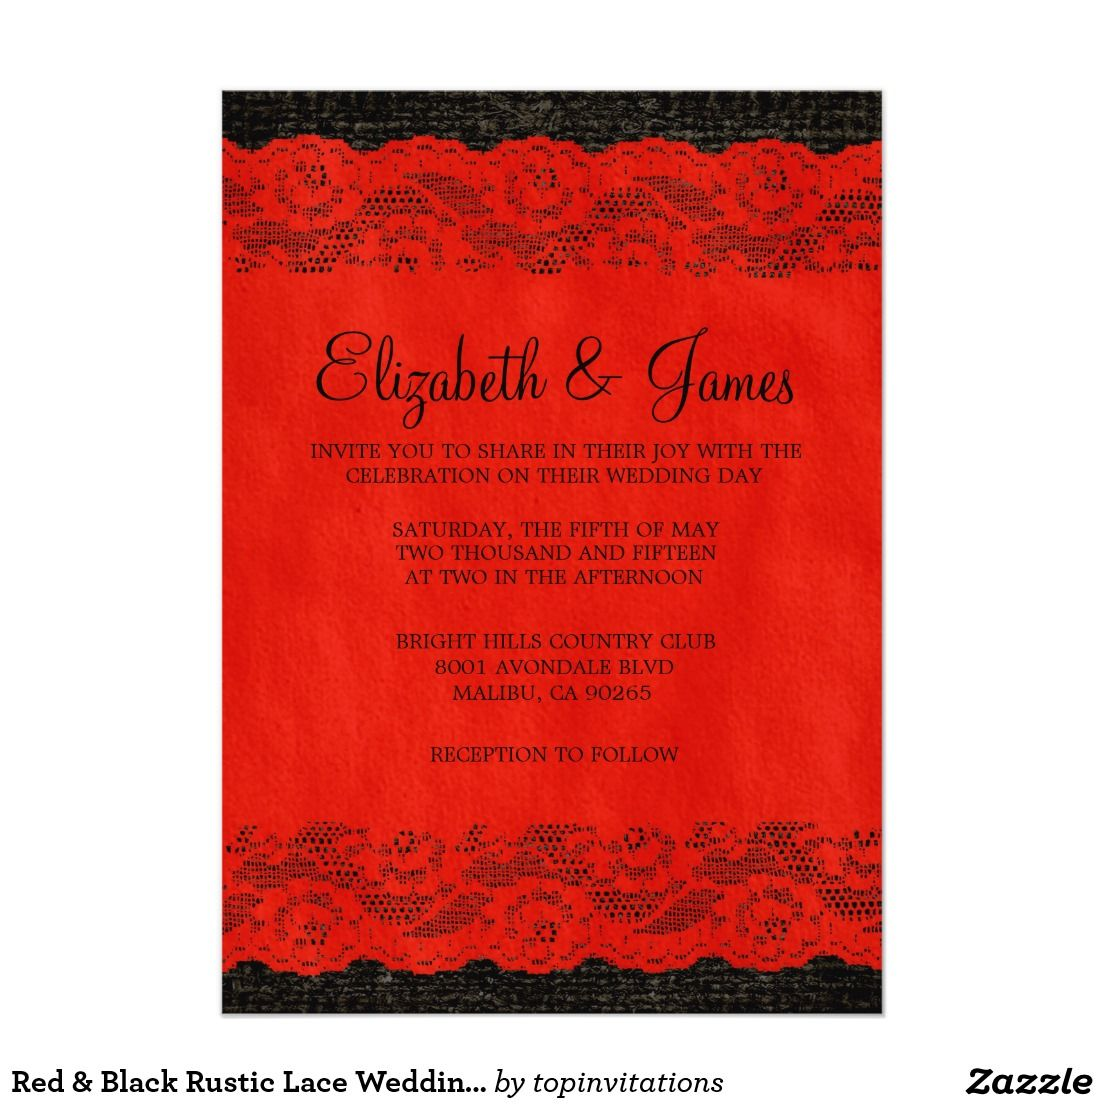 Red & Black Rustic Lace Wedding Invitations | Lace weddings, Red ...